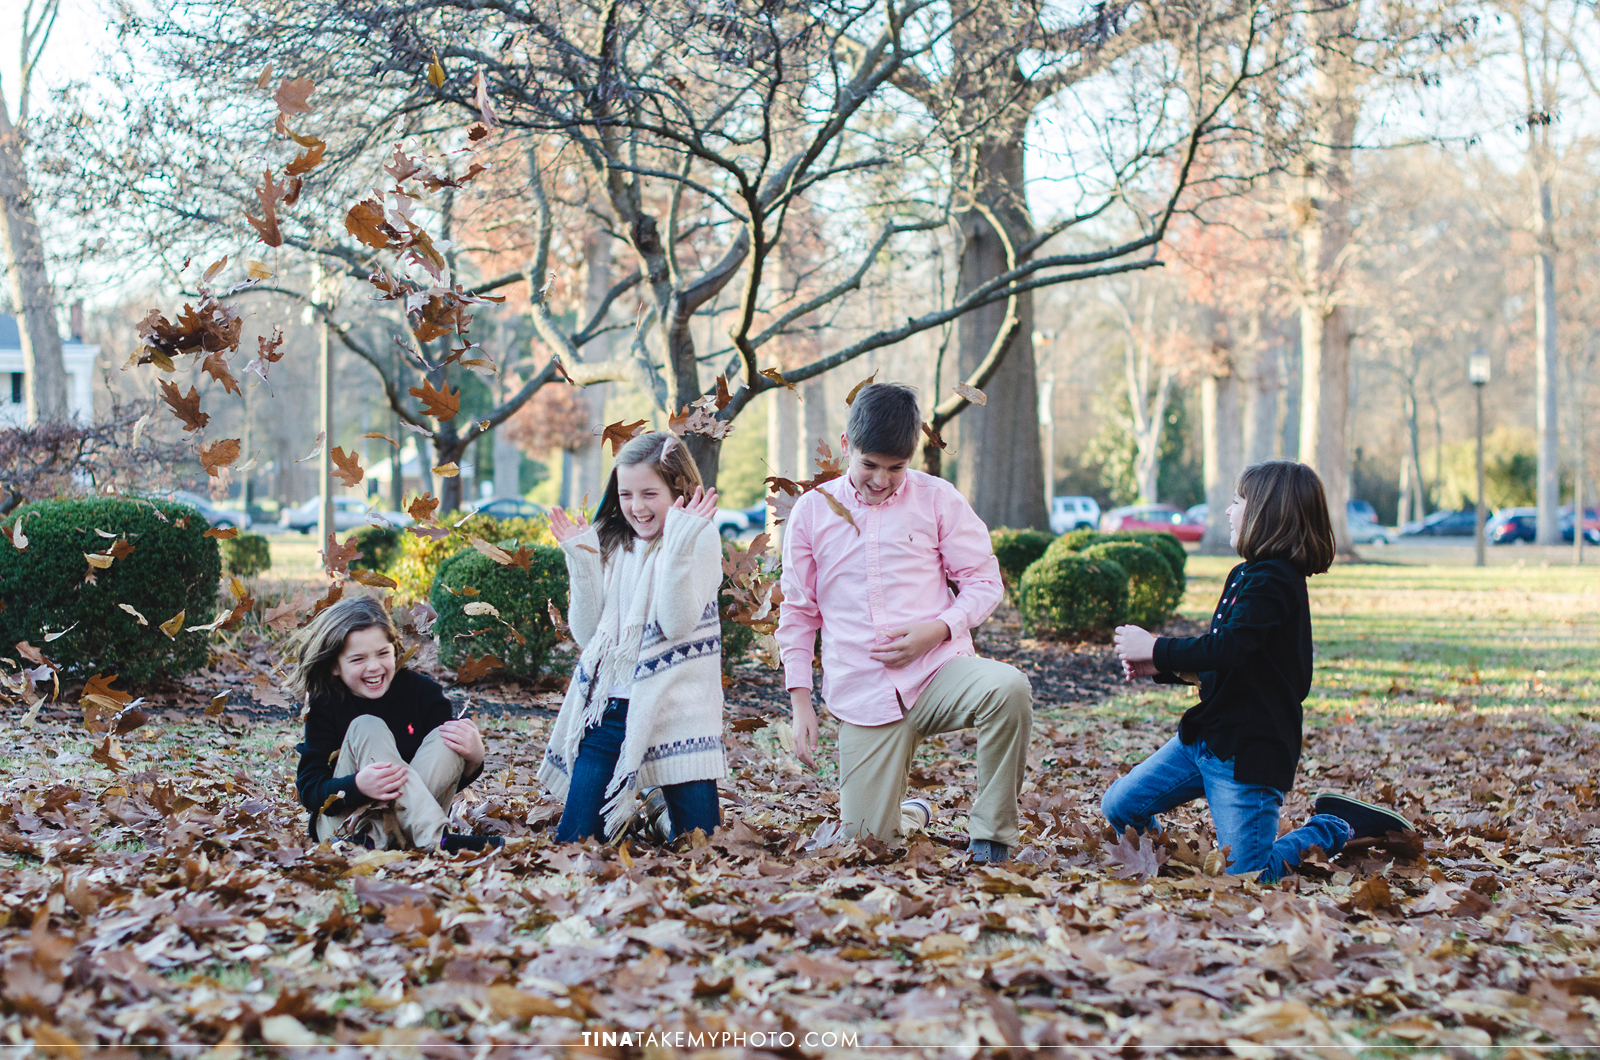 VA-virginia-family-photographer-kids-children-siblings-sunny-ashland-randolph-macon-fall-leaves-playing-laughing